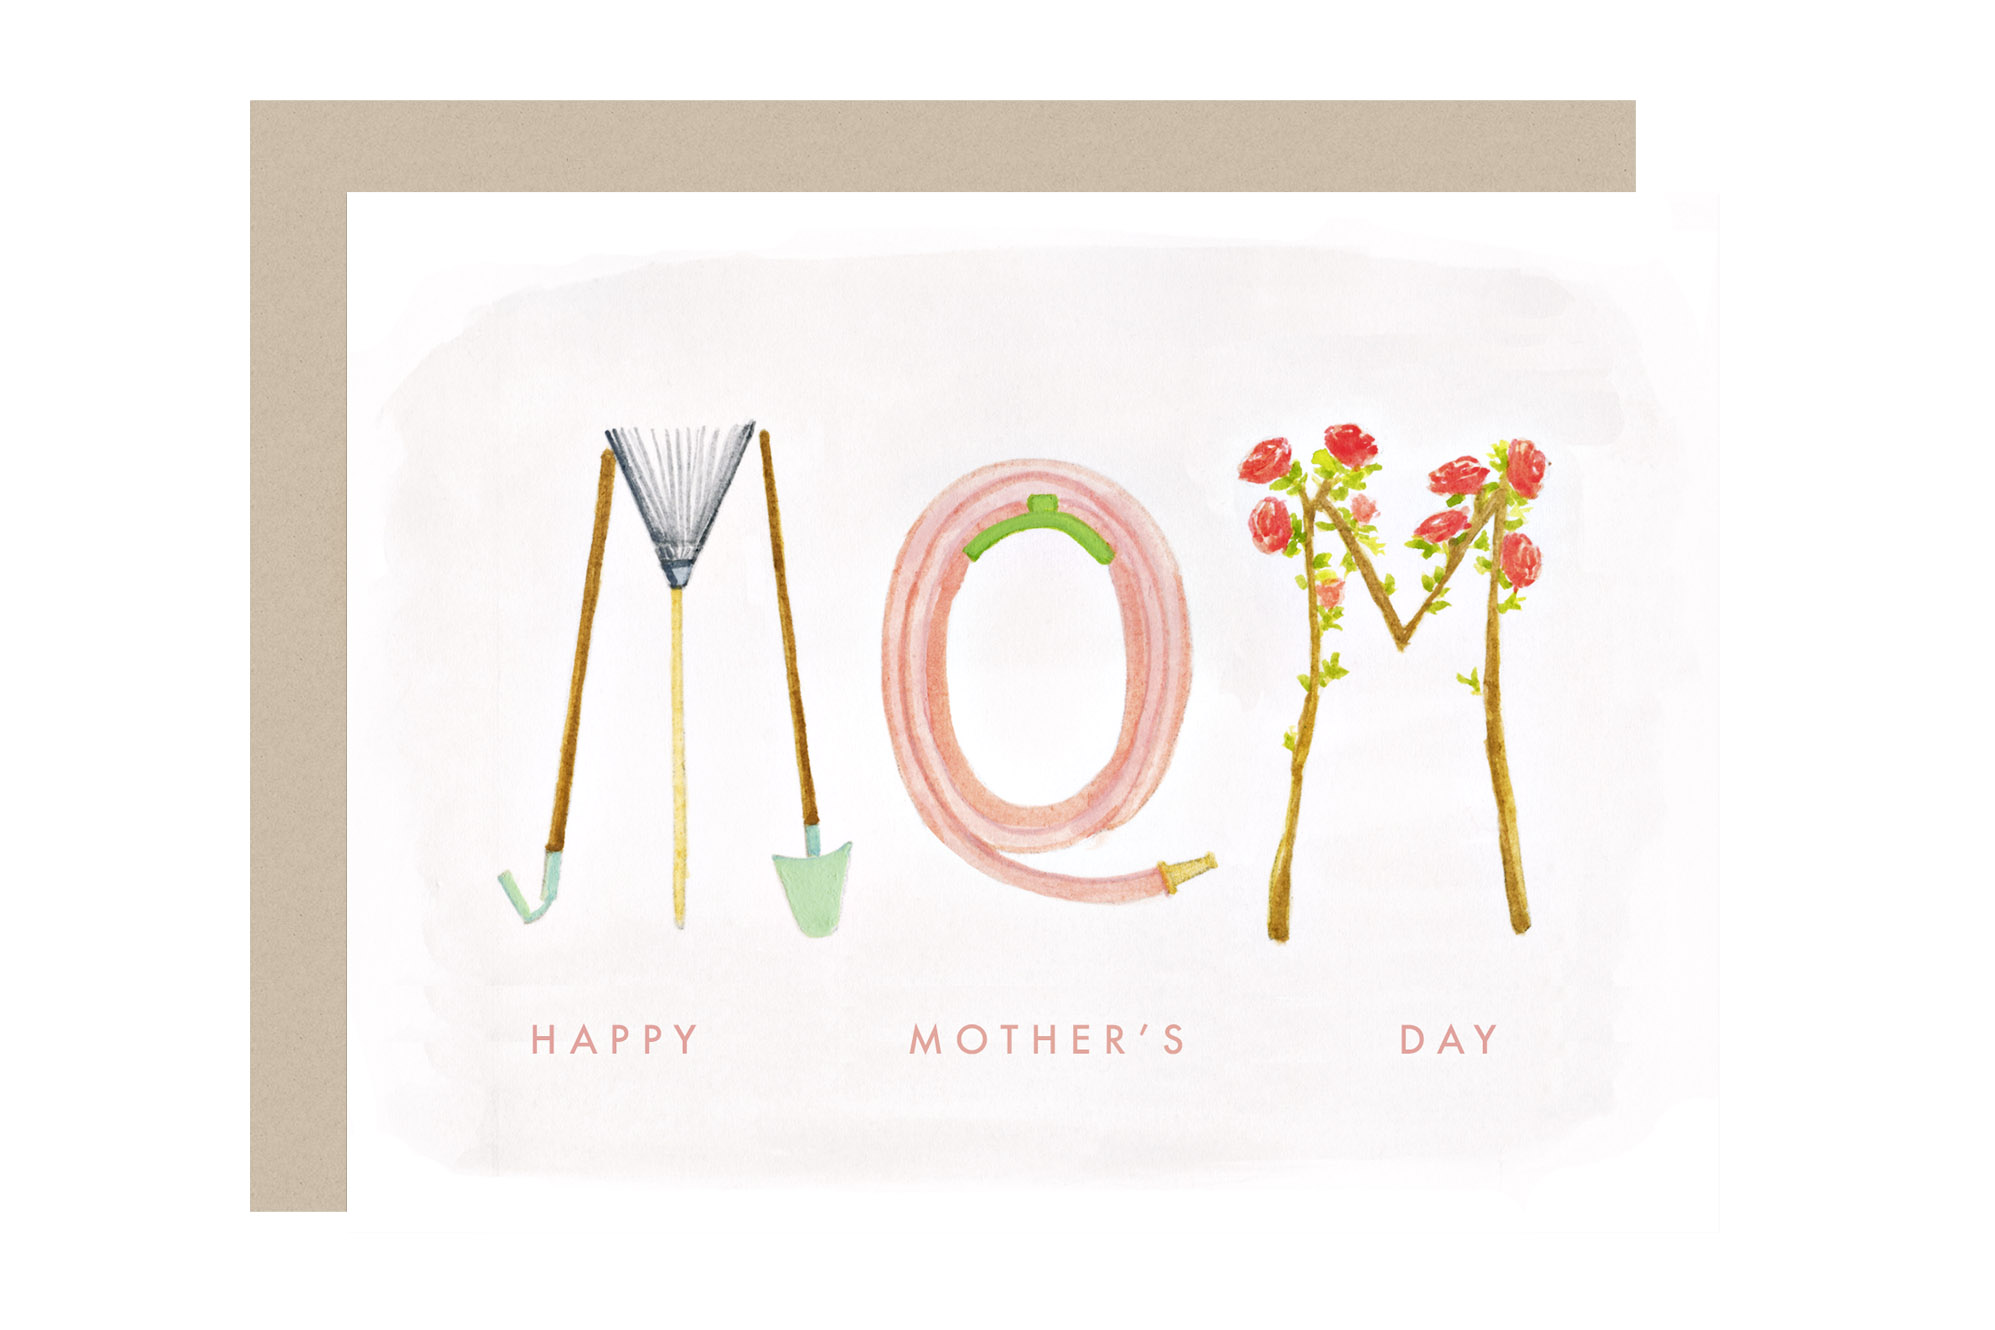 30 Happy Mothers Day Cards Cute Cards to Buy for Mom